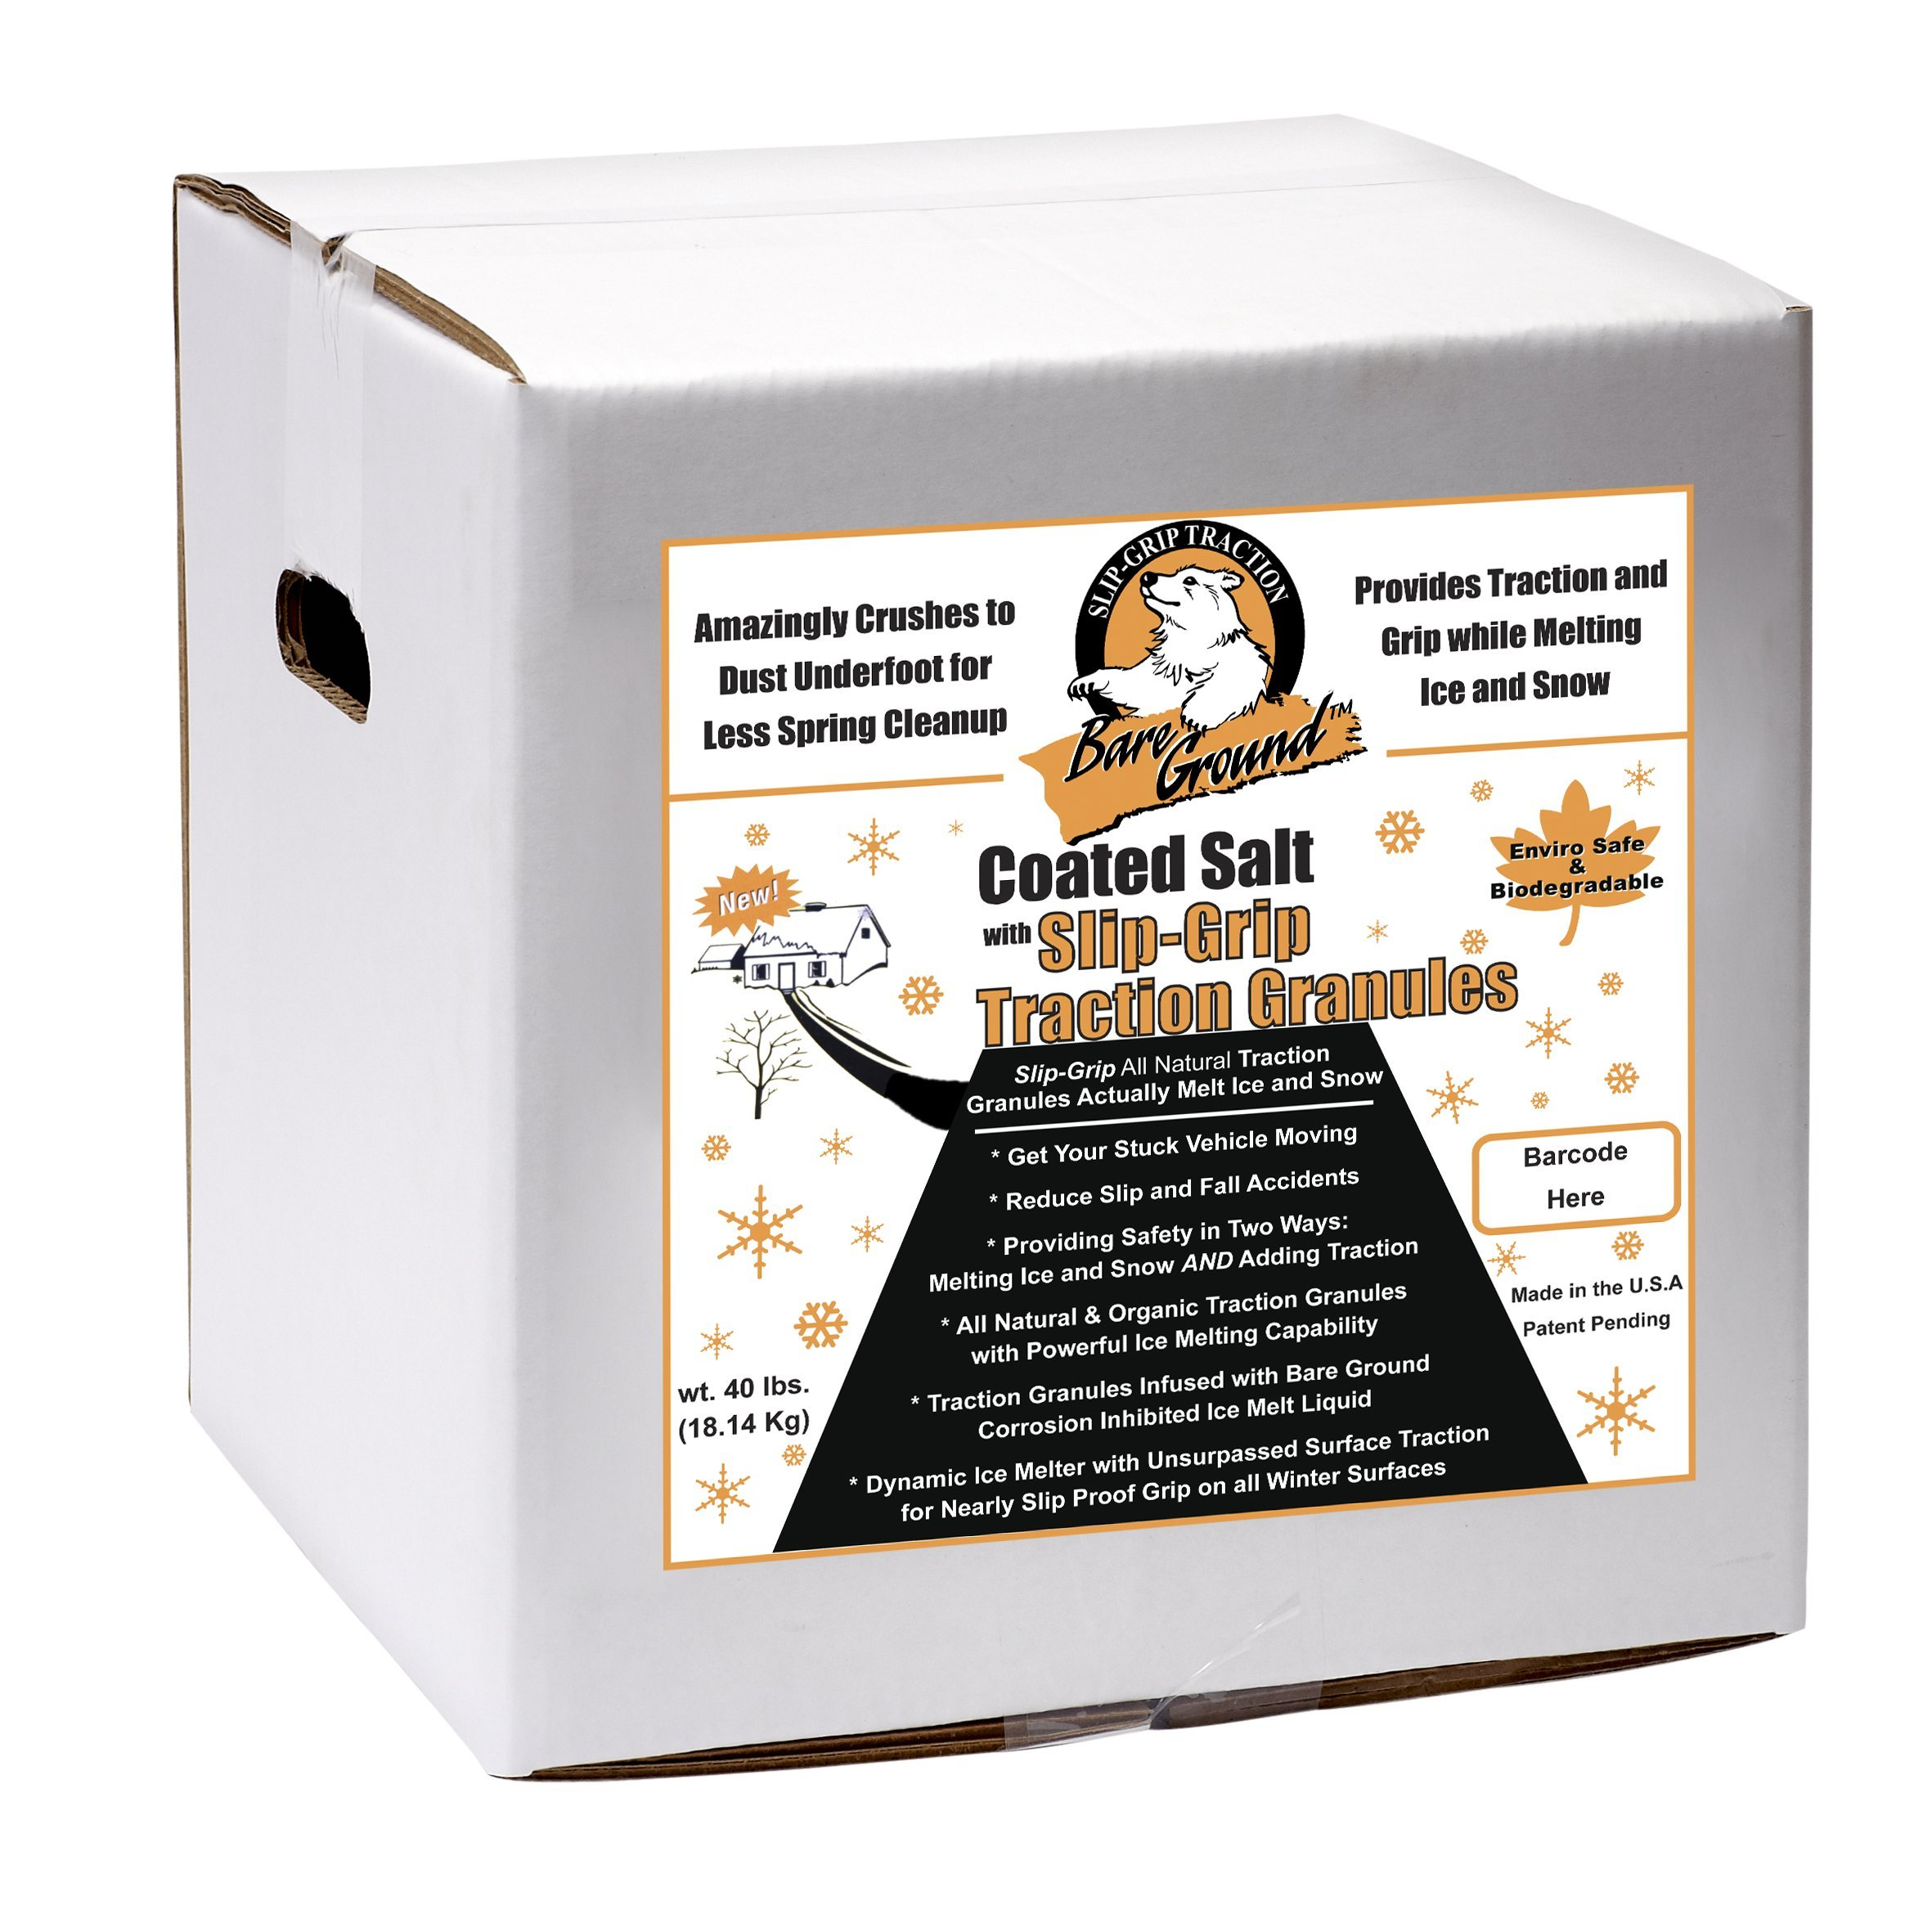 Bare Ground CSSLGP-40 Premium Coated Granular Ice Melt with Slipgrip Traction Granules, 40 lbs